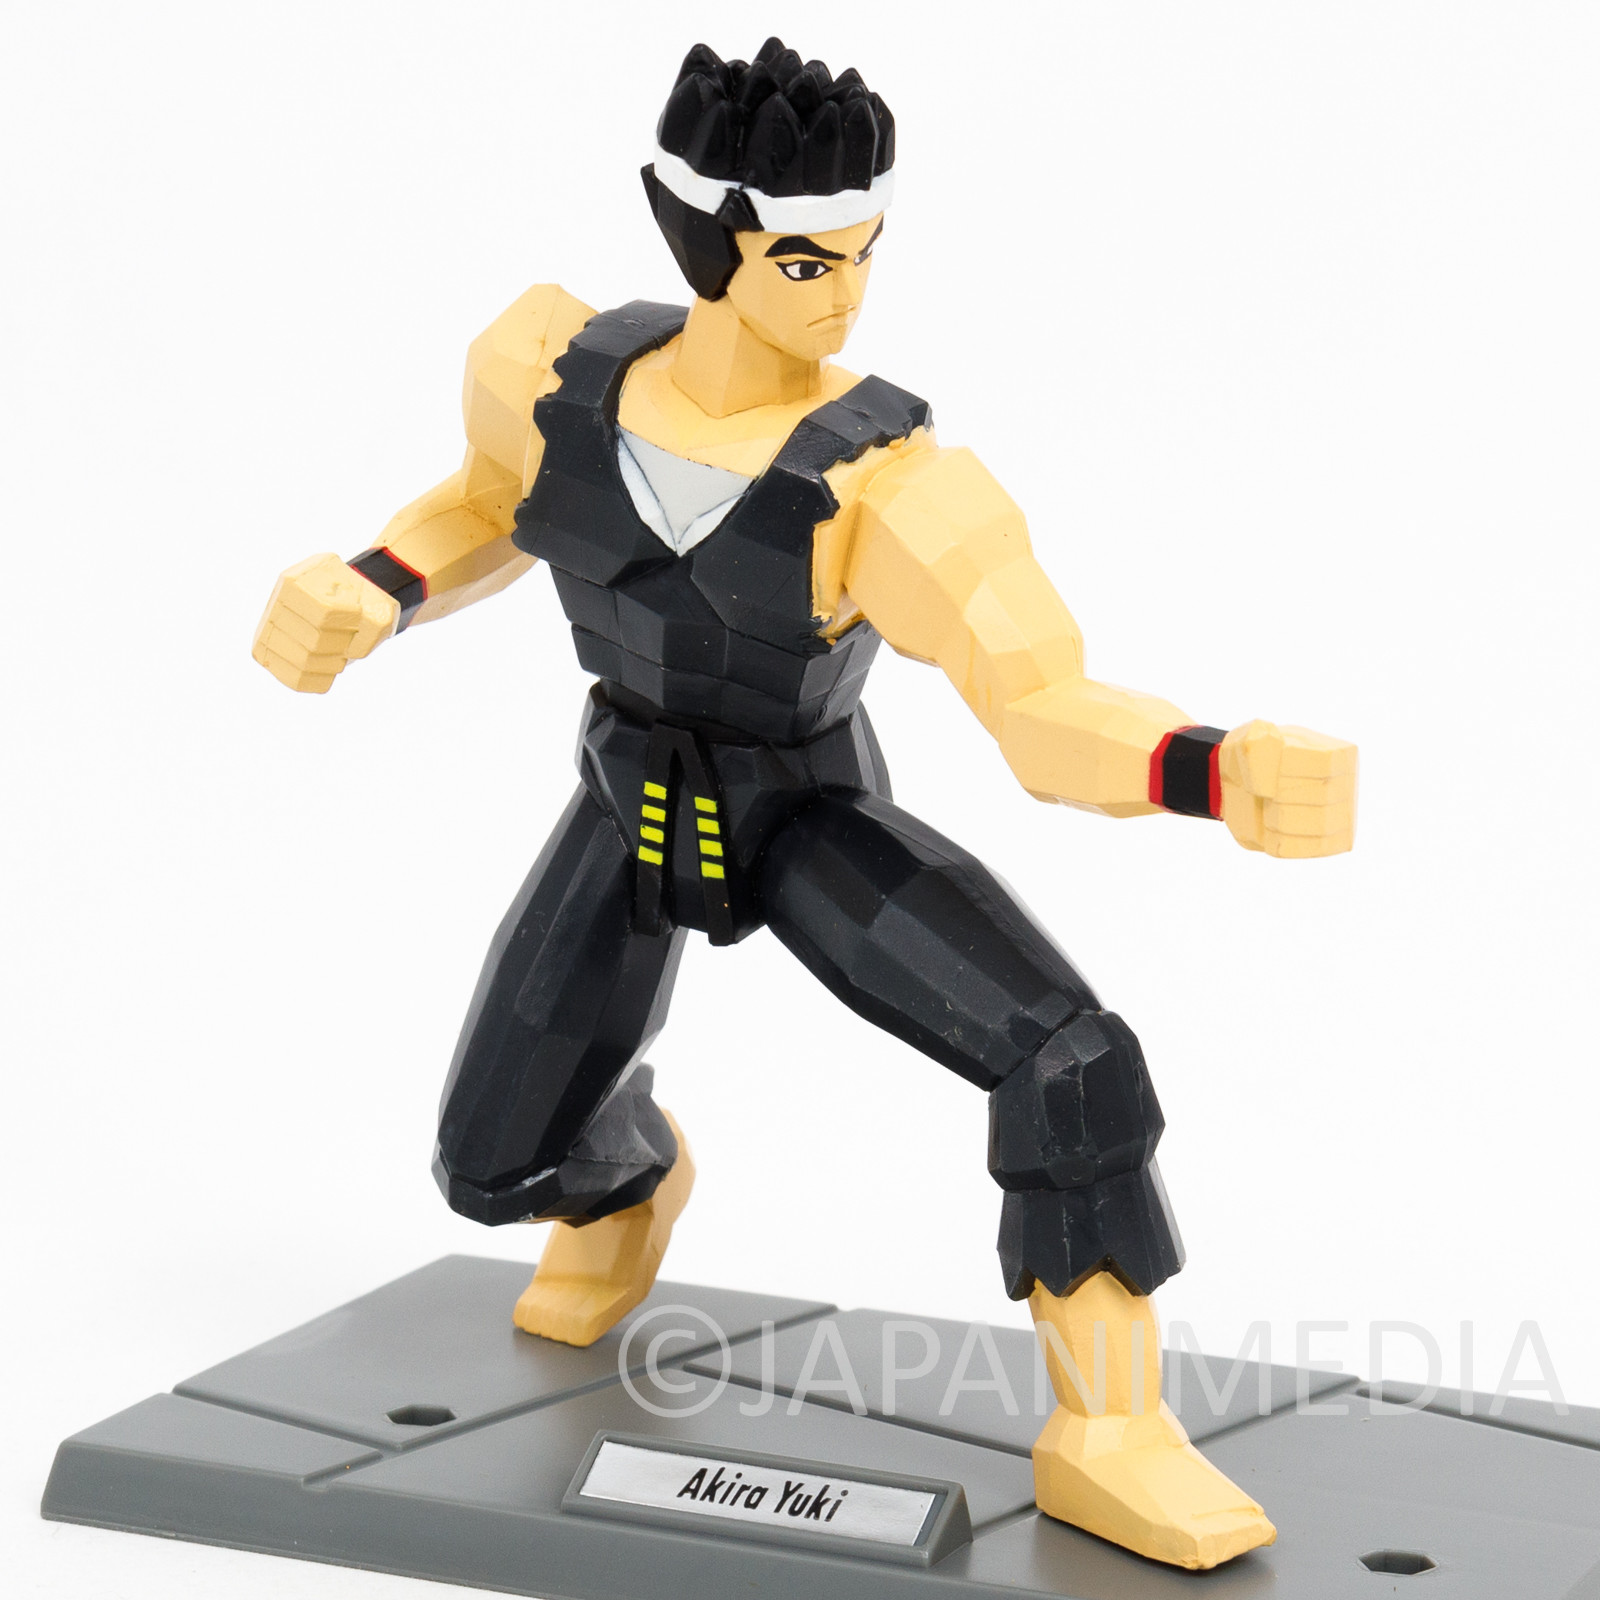 Retro! Virtua Fighter Akira Yuki Figure SEGA 1995 JAPAN